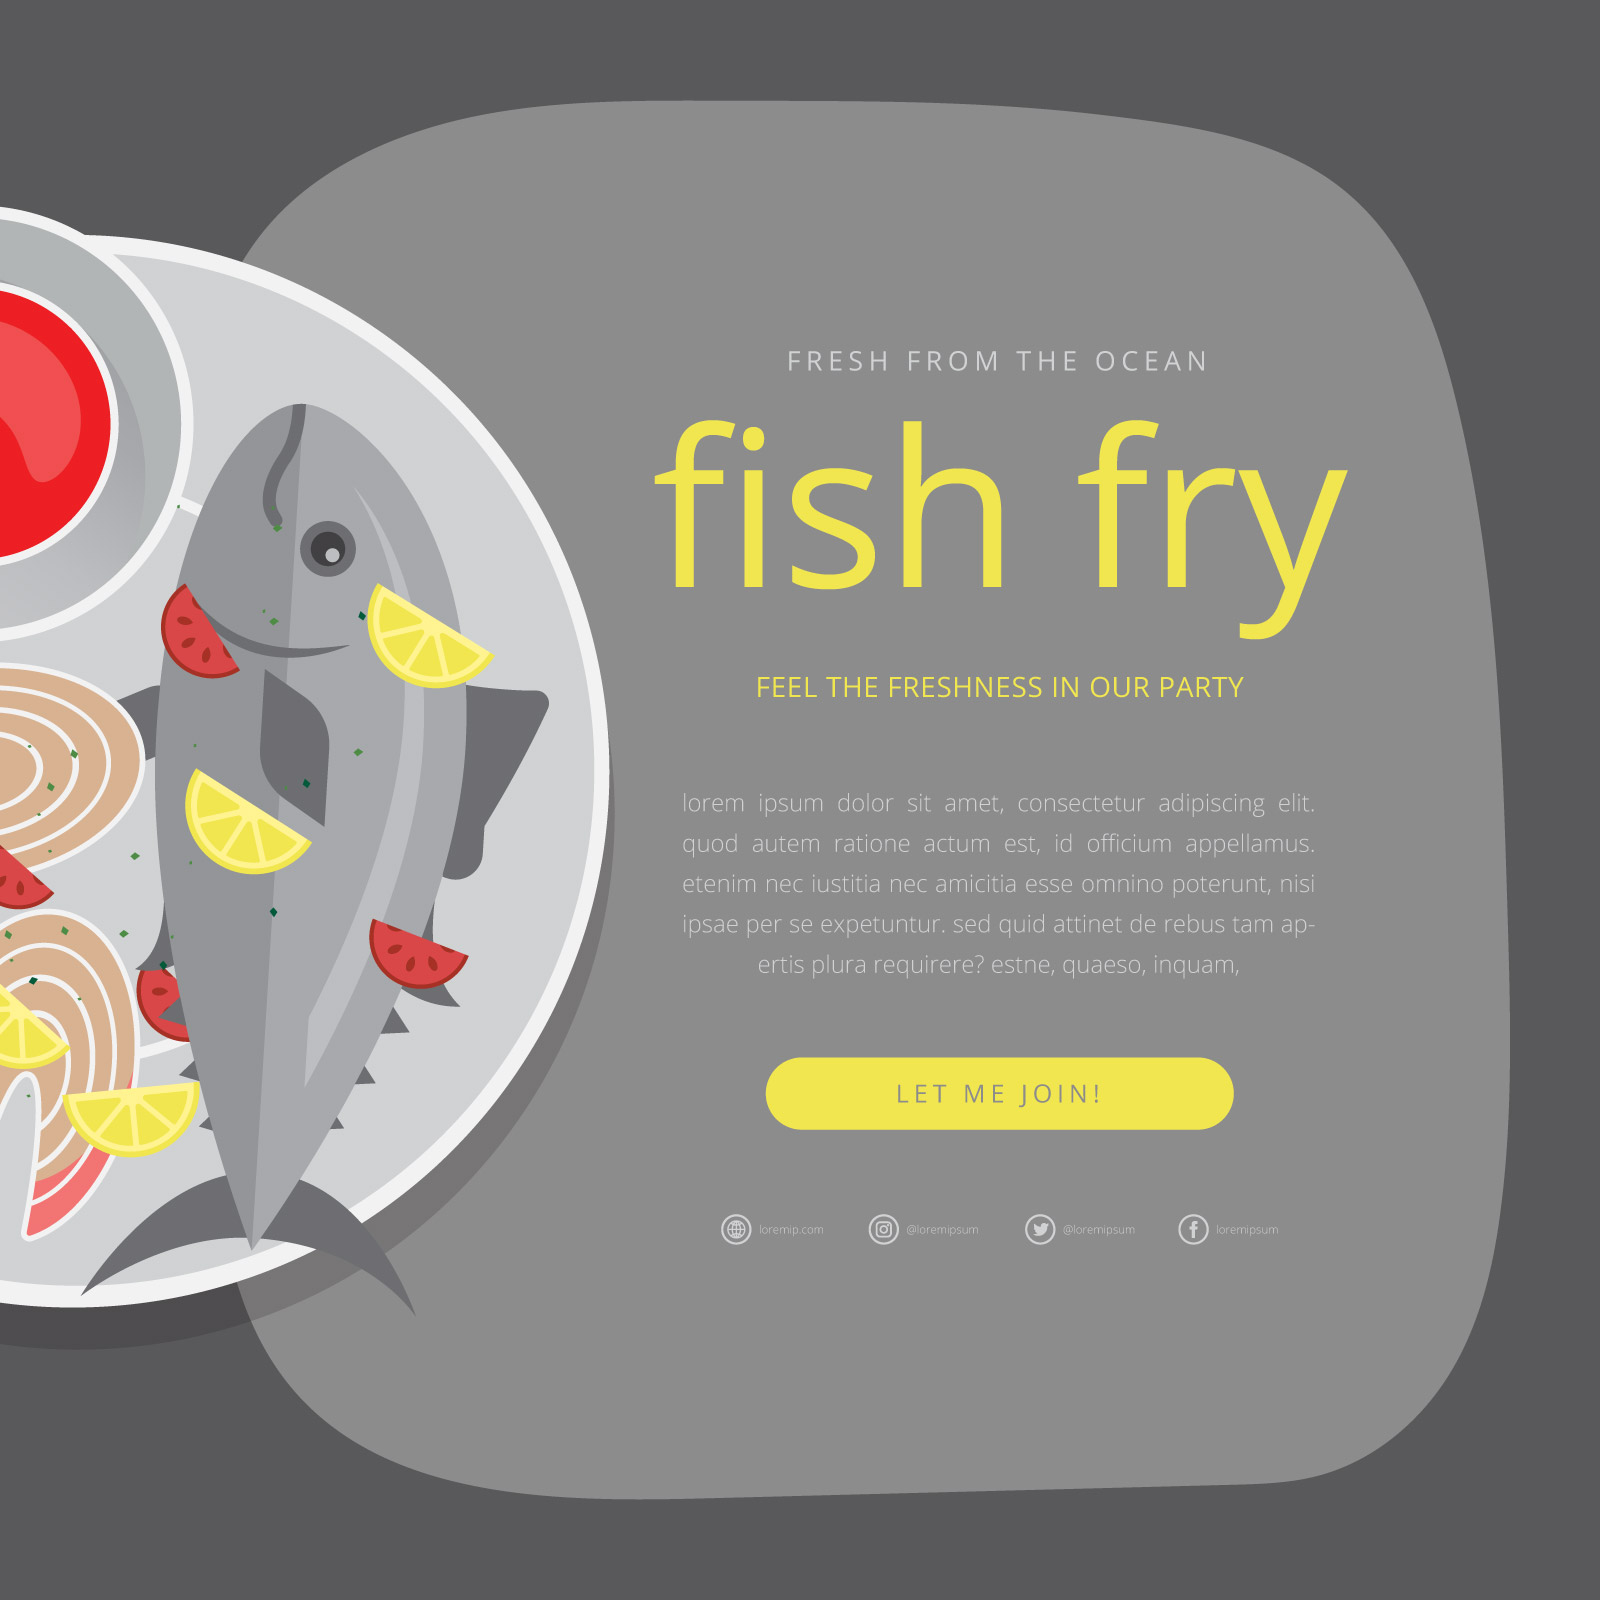 friday fish fry seafood invitation template download. Black Bedroom Furniture Sets. Home Design Ideas